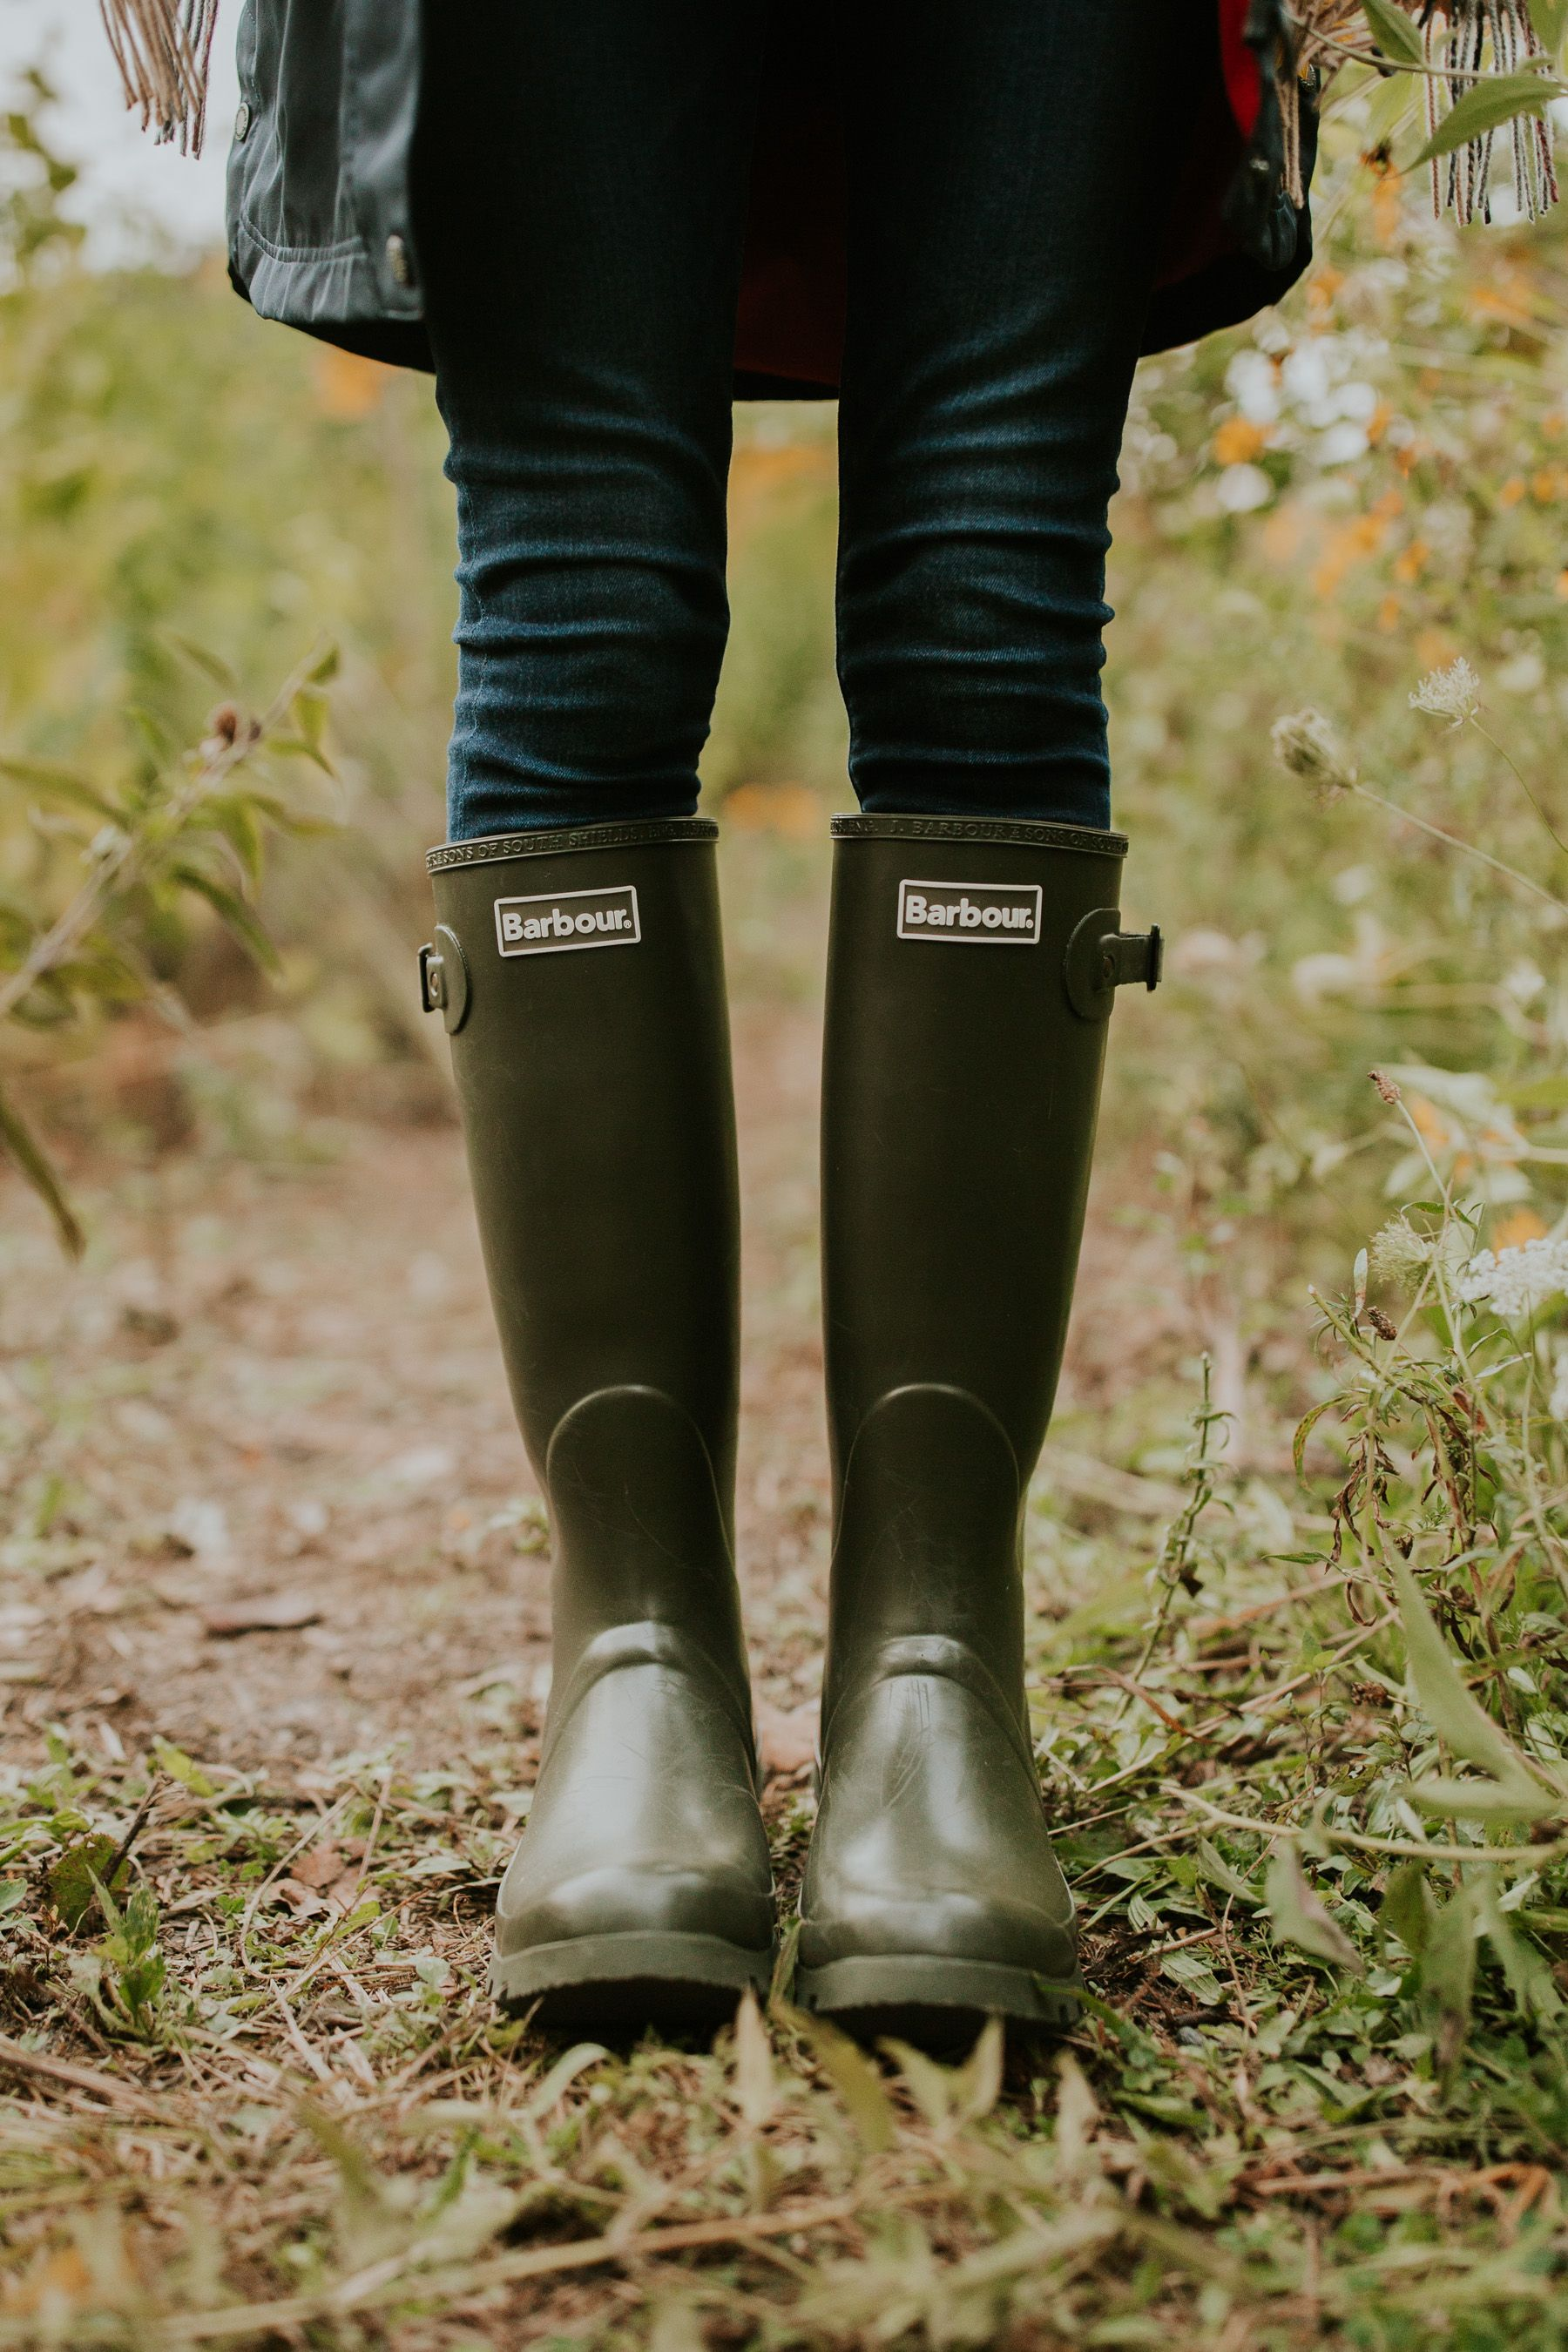 Boots, Barbour wellies